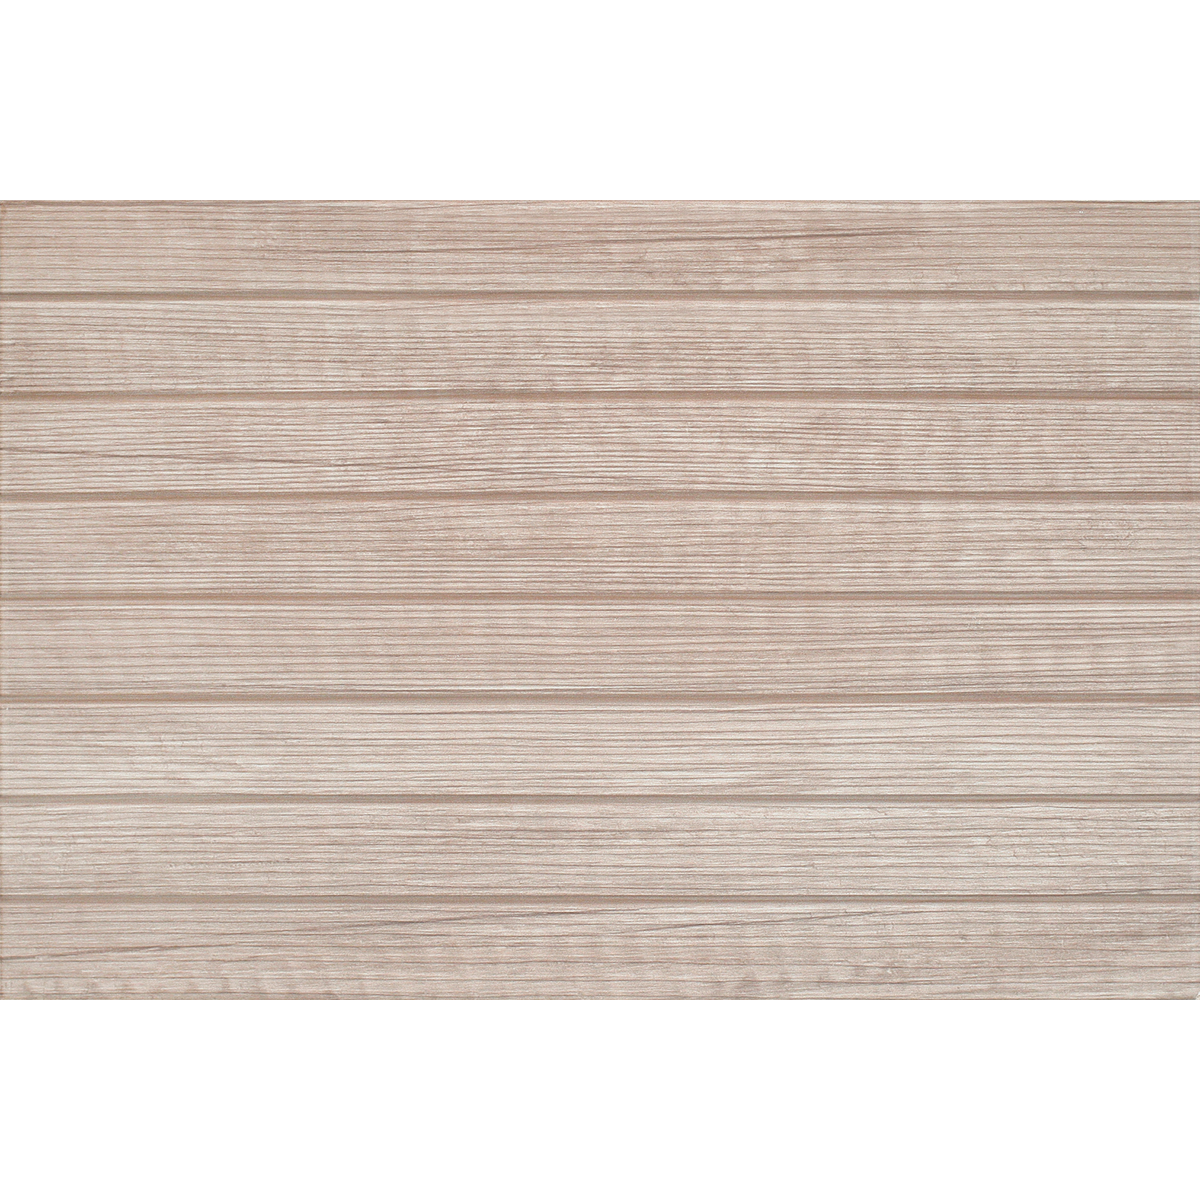 Плитка Cersanit  Sakura Brown  30x45